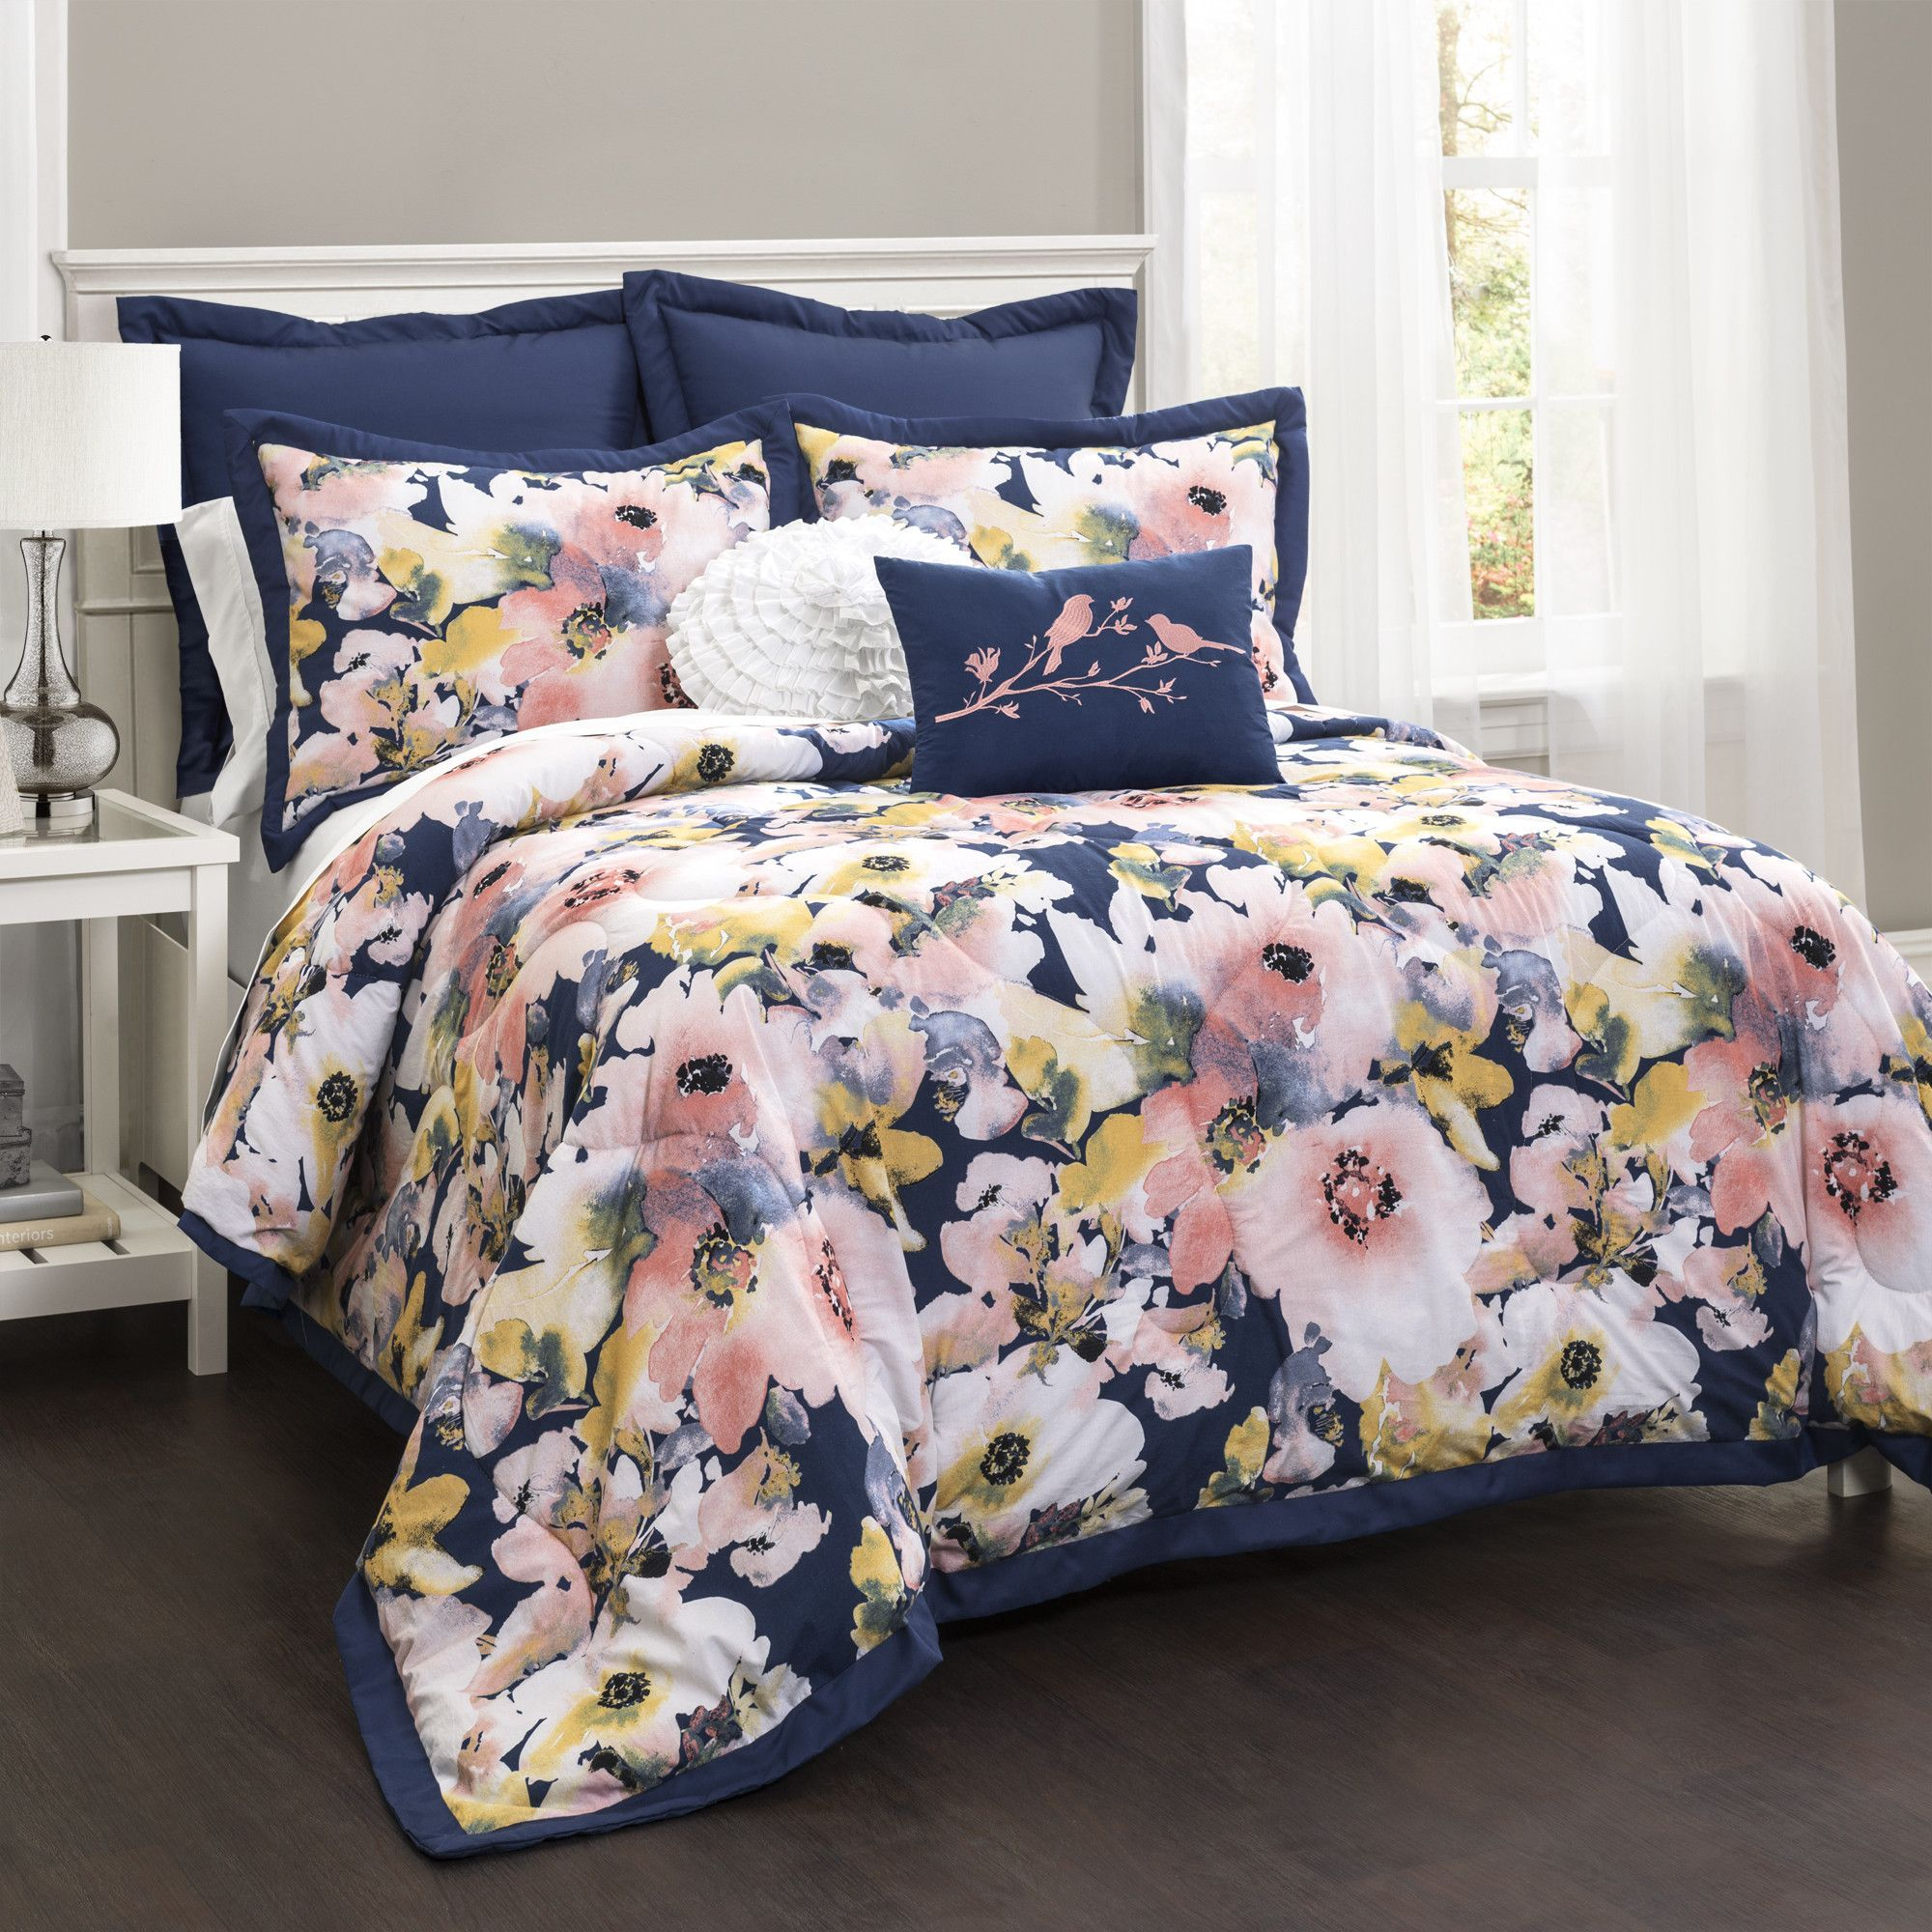 mauve set products satin pieces cal solid faux king quilt vineyard floral piece luxury napa tache comforter